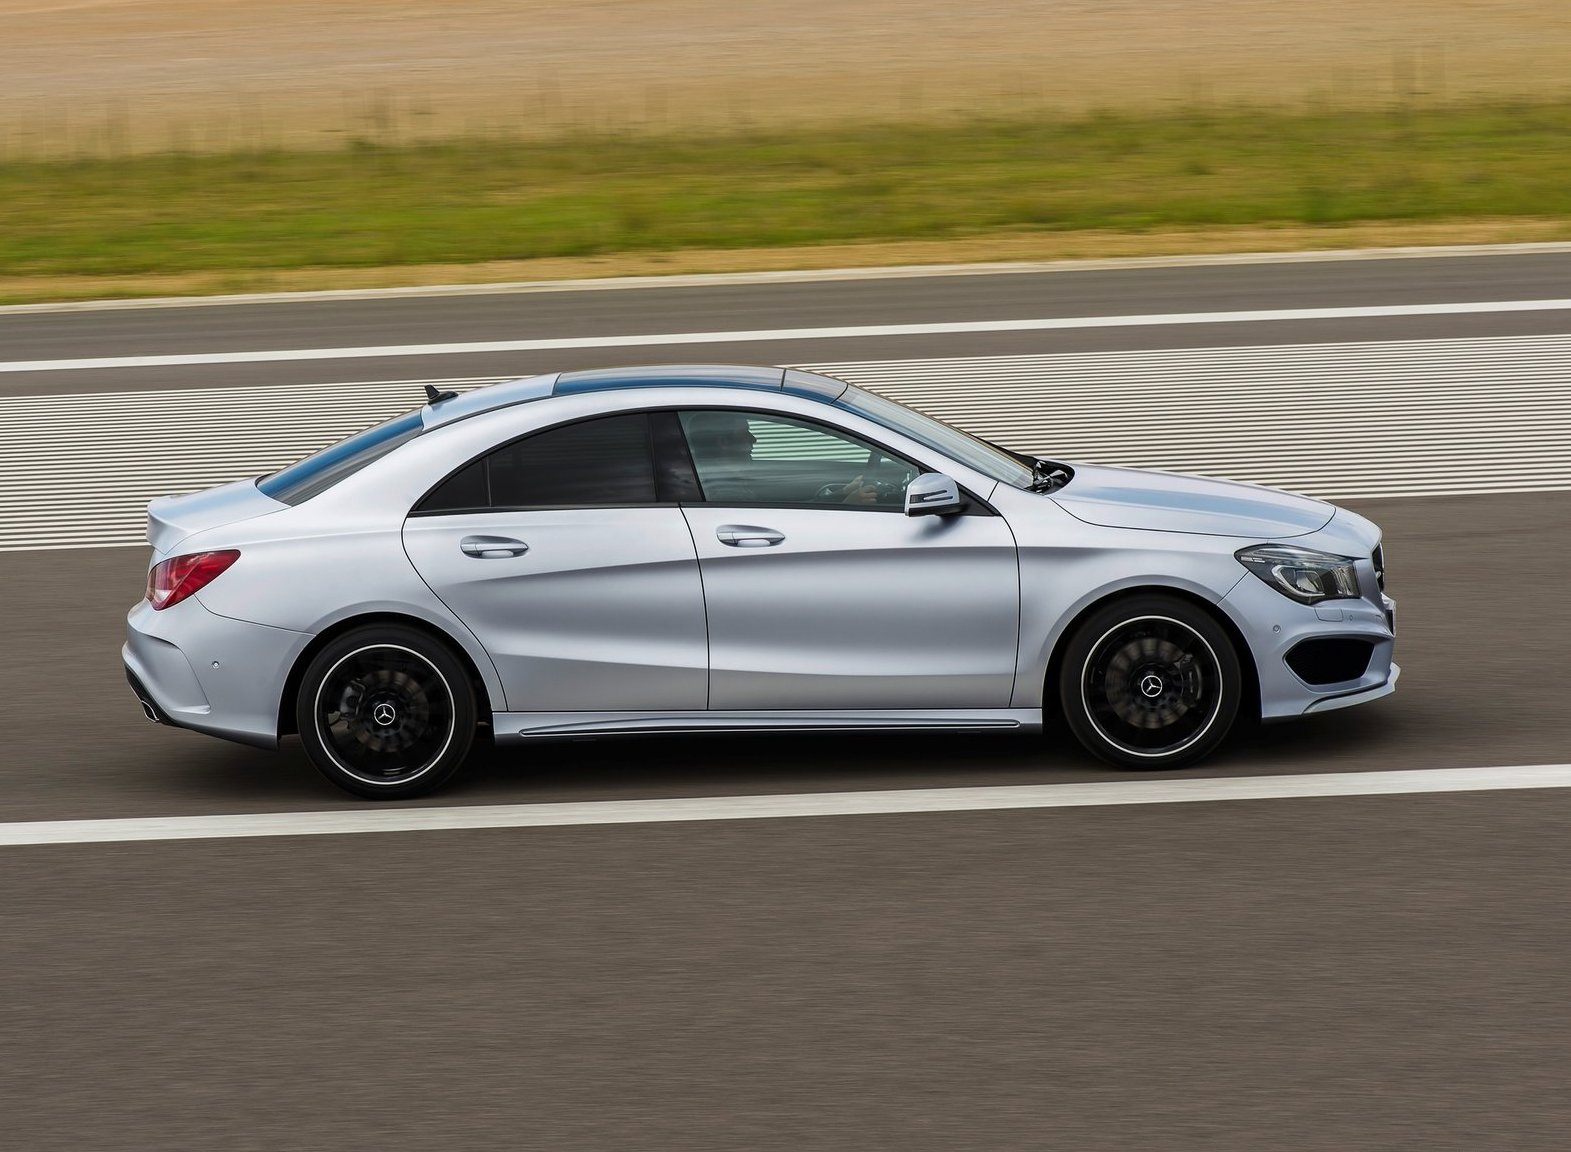 Mercedes benz cla class 2014 wallpapers for 2014 mercedes benz cla class